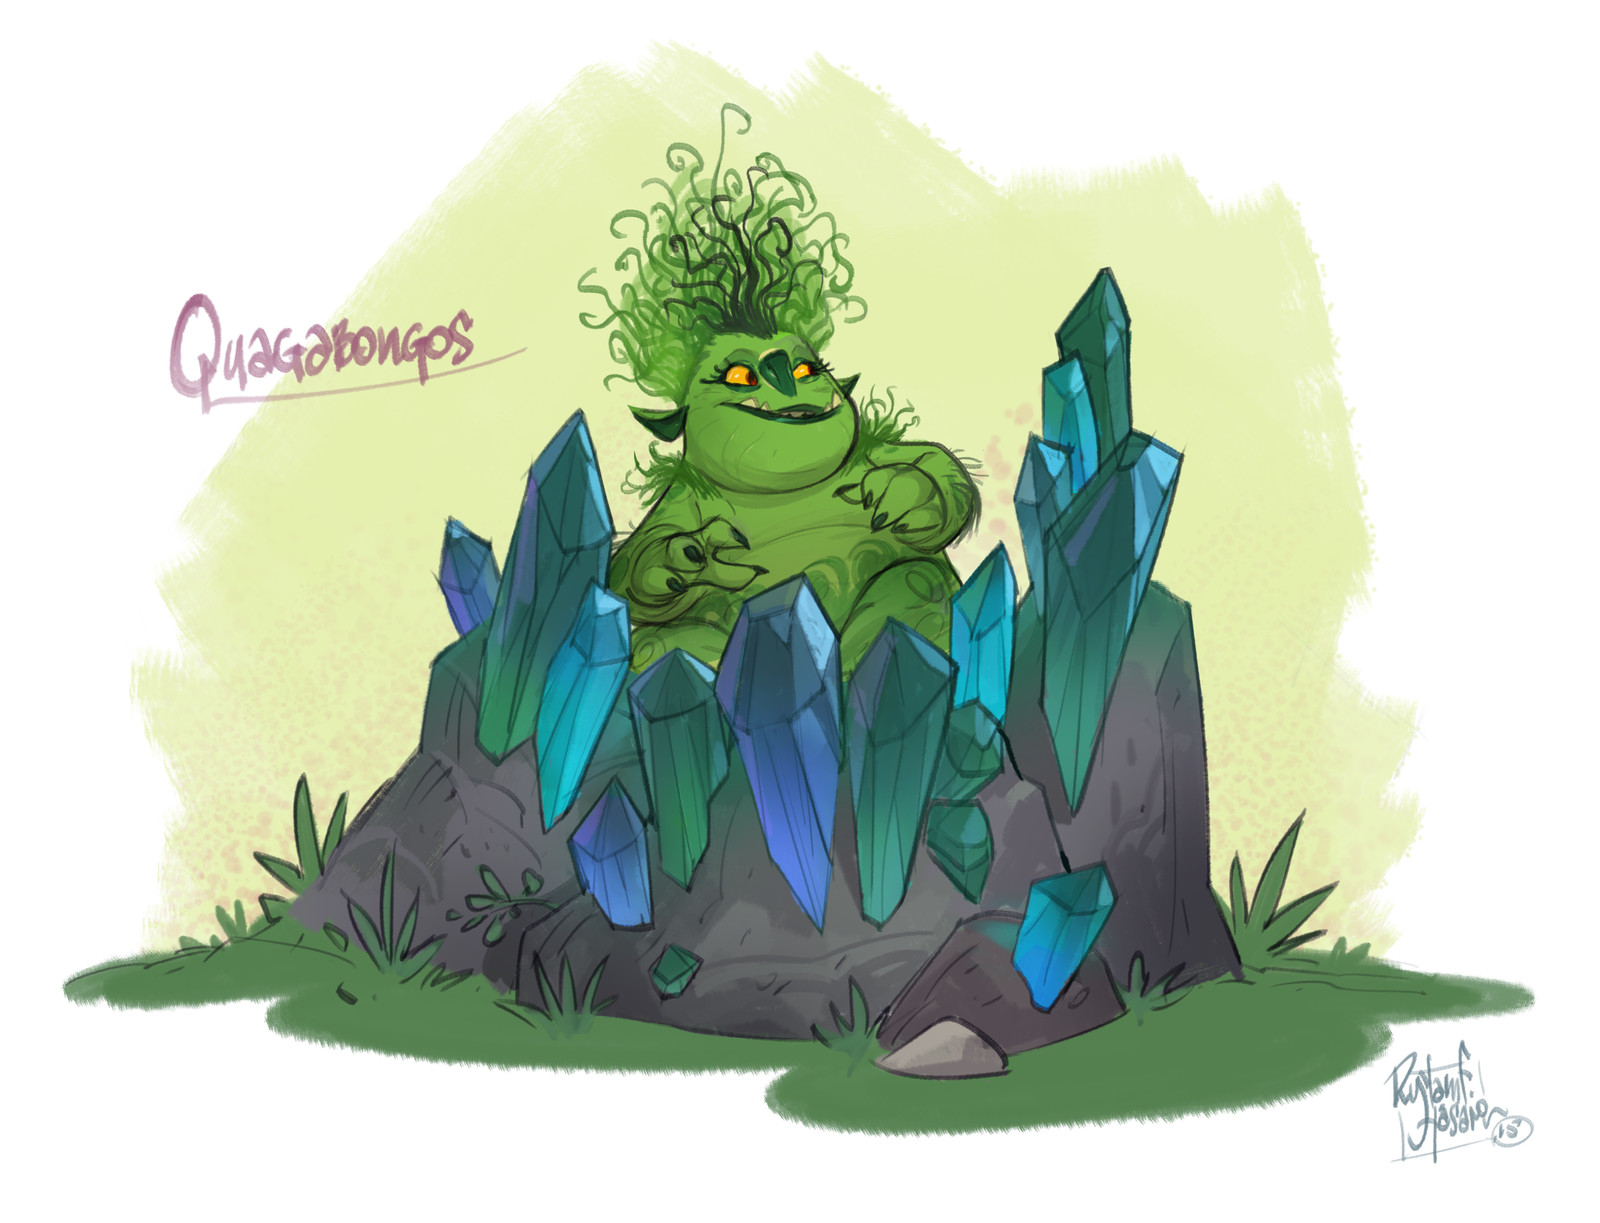 Trollhunters Production Sketches, Quagawamps' Swamp